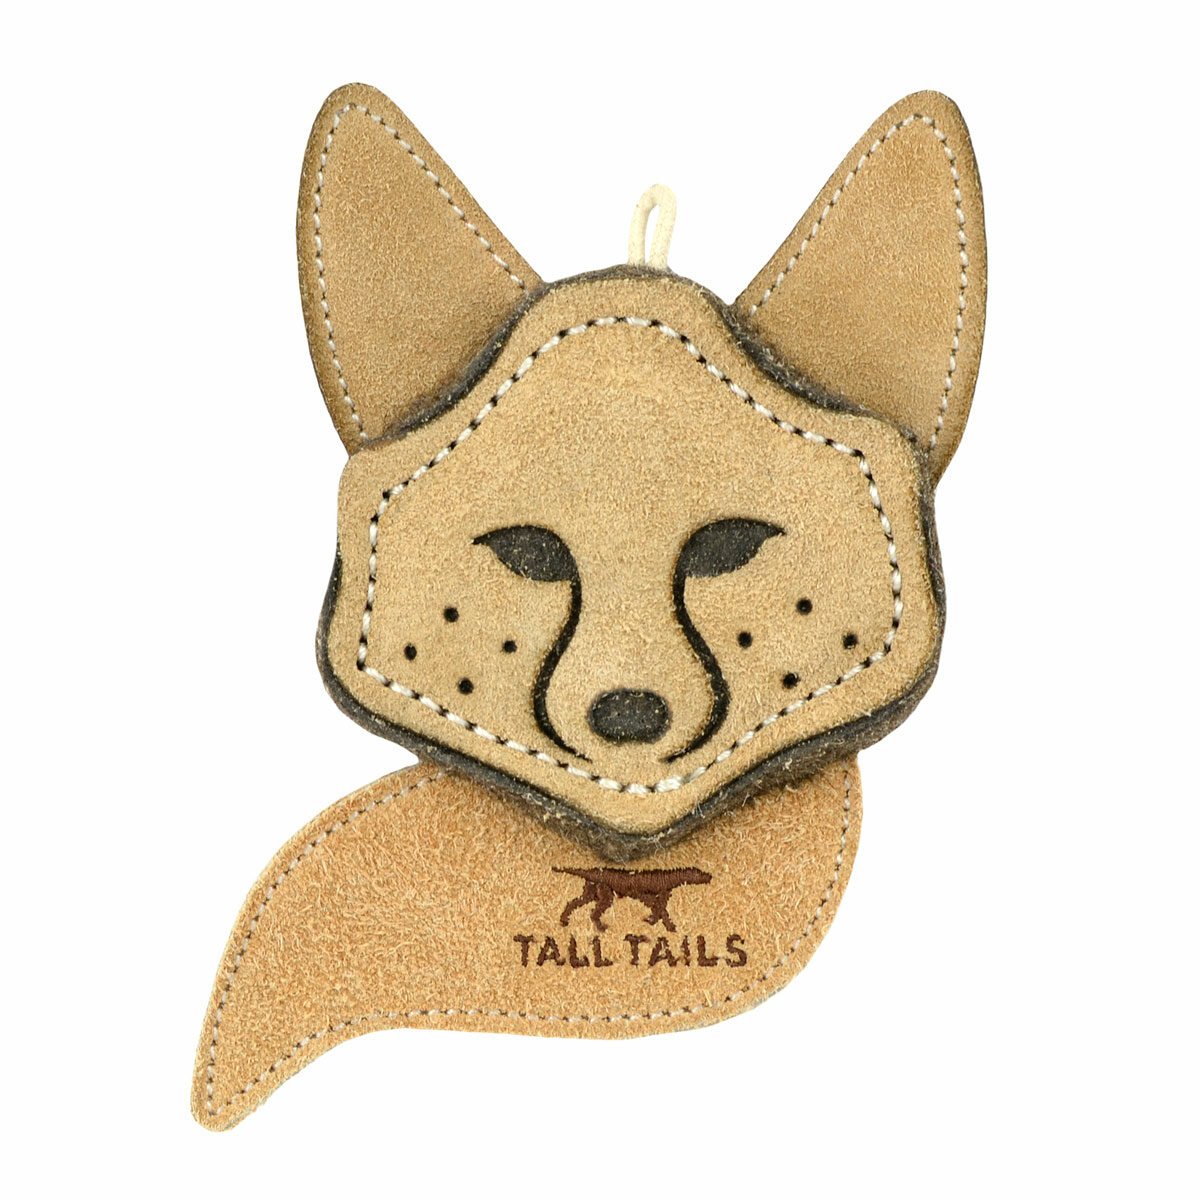 Tall Tails Critter Fox Dog Toy